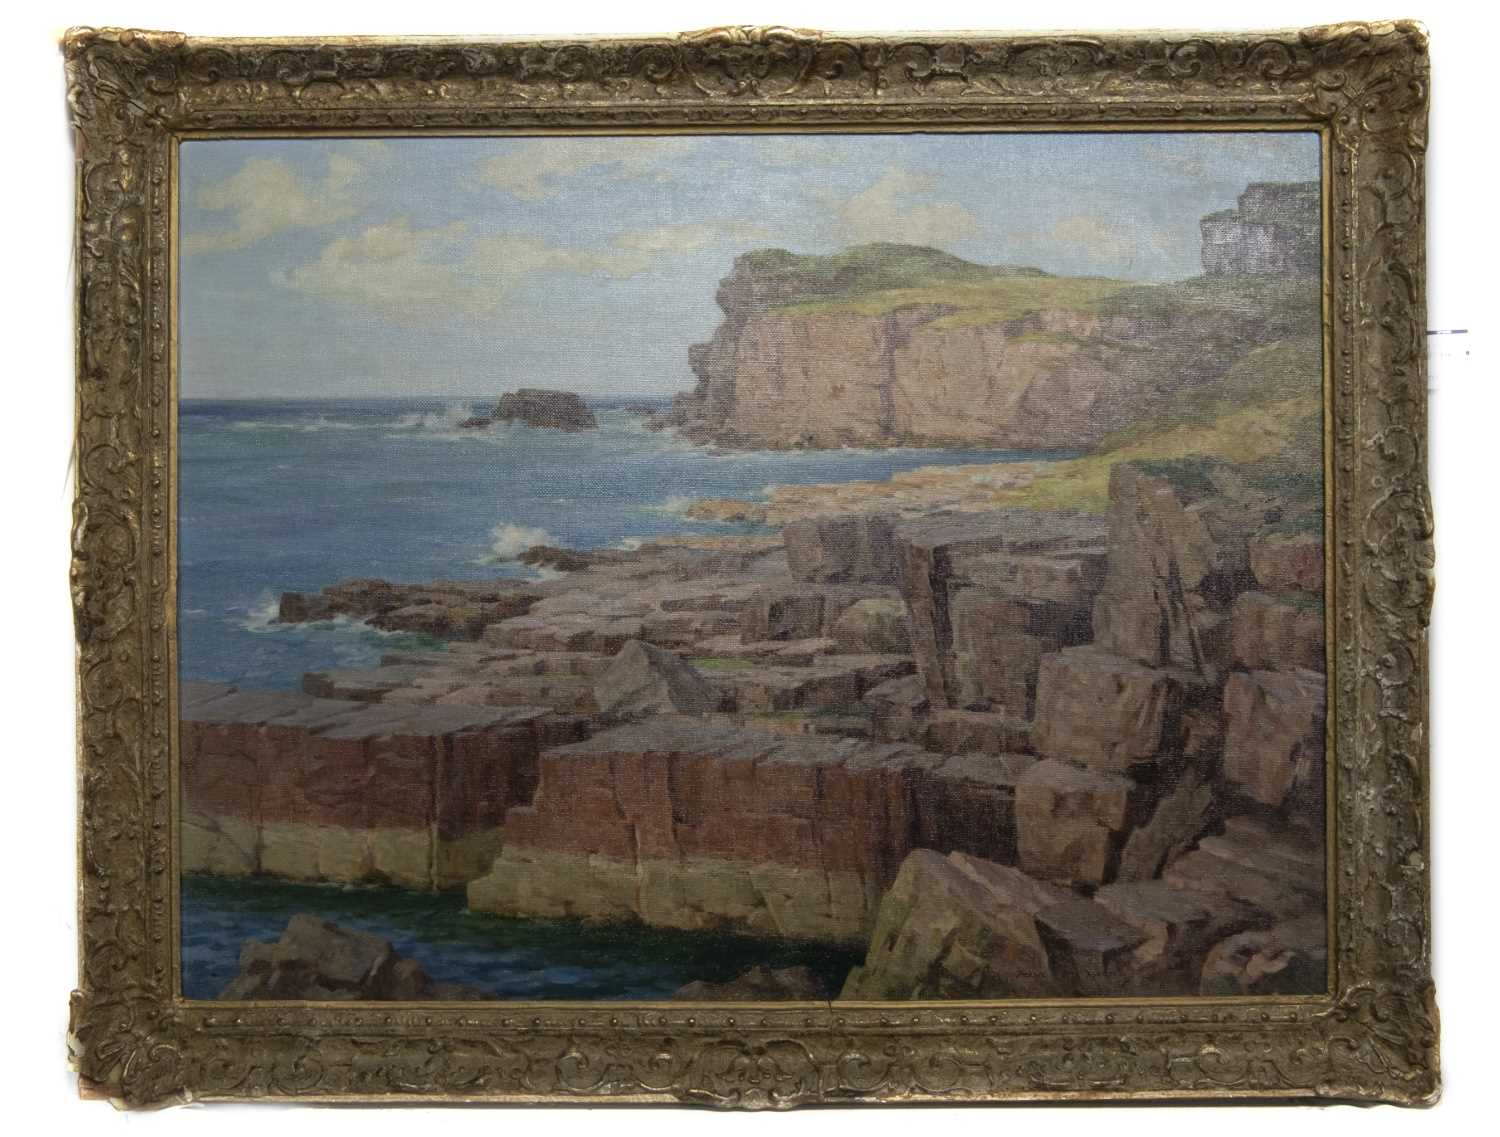 Lot 92 - OFF THE SCOTTISH COAST, AN OIL BY FRANCIS PATRICK MARTIN